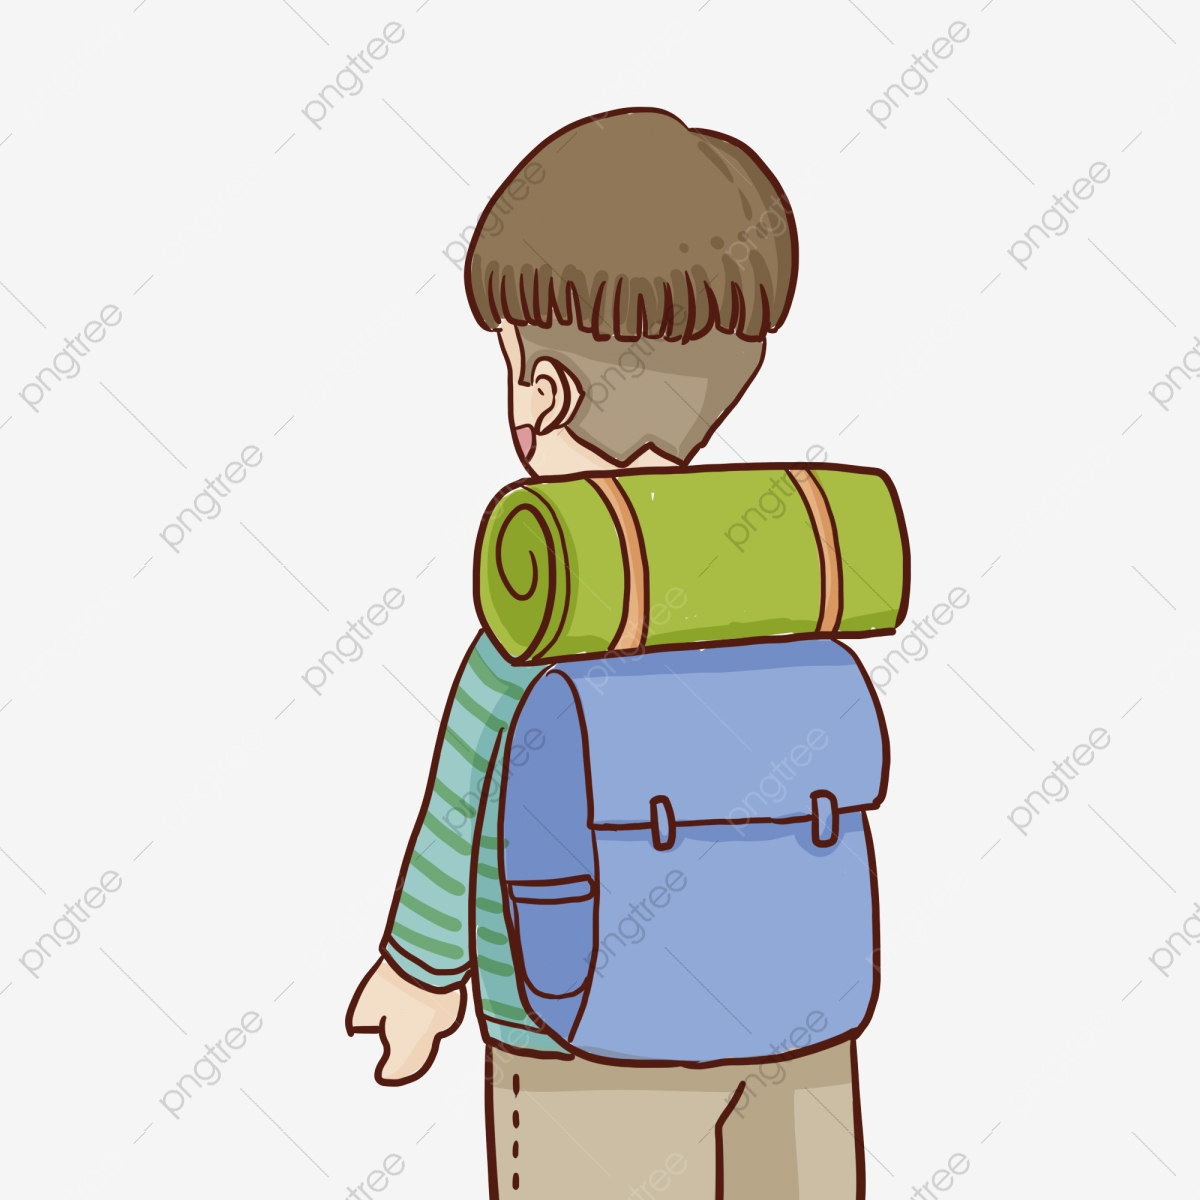 Carrying Bags Png Images Vector And Psd Files Free Download On Pngtree